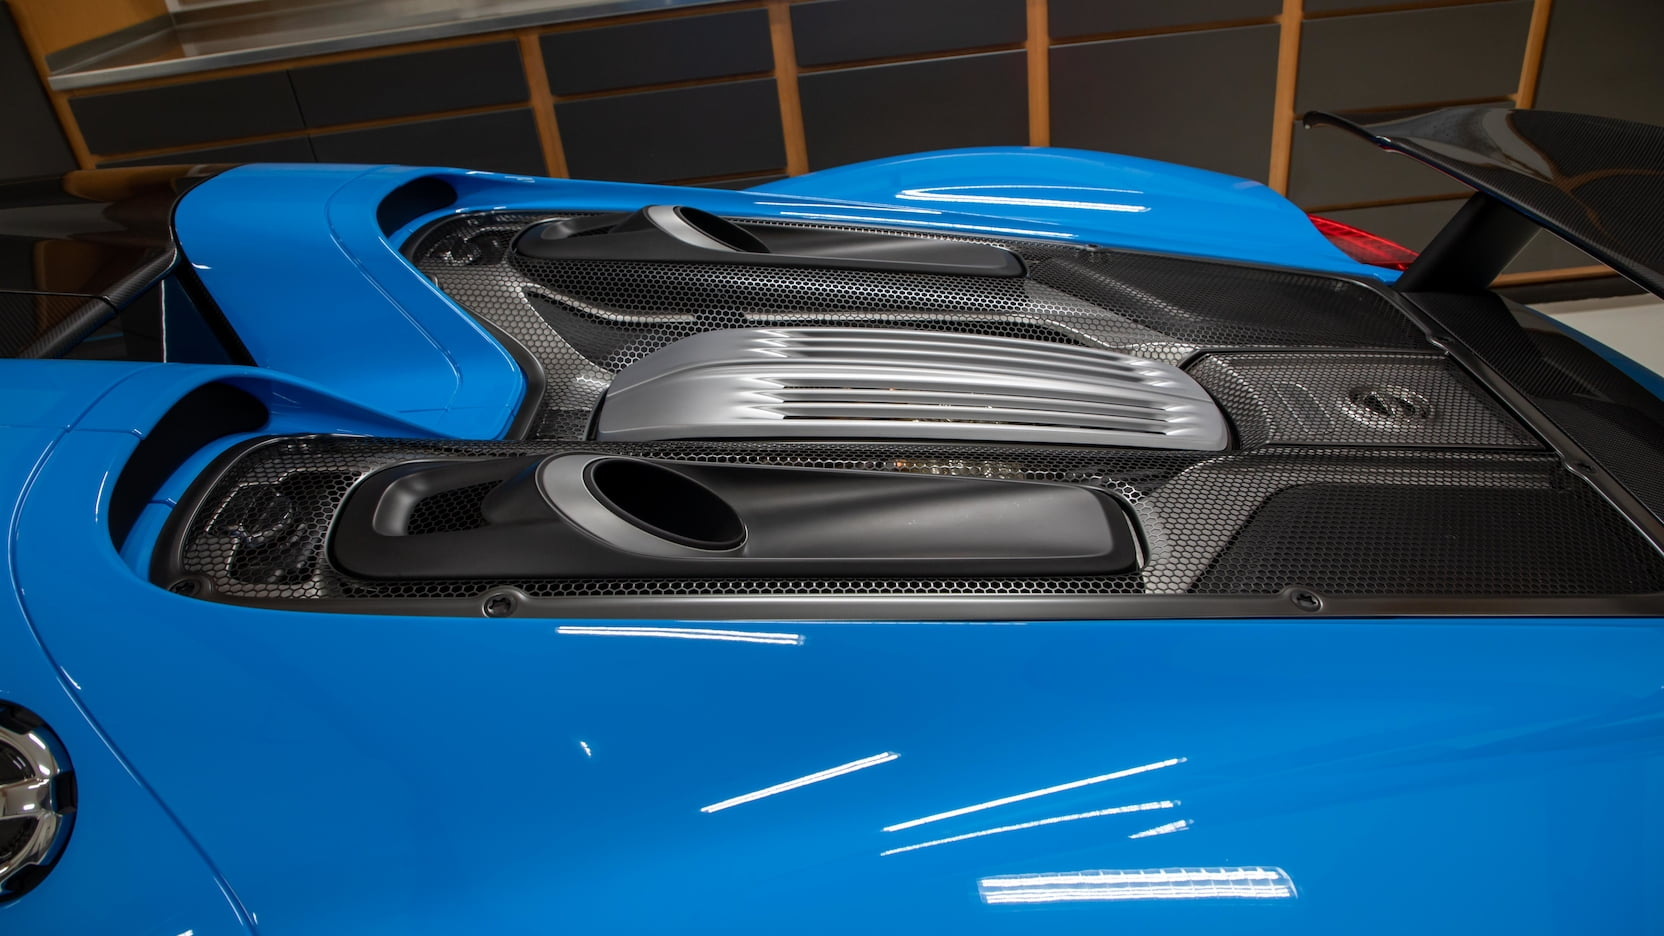 Porsche-918-Spyder-Riviera-Blue-auction-6